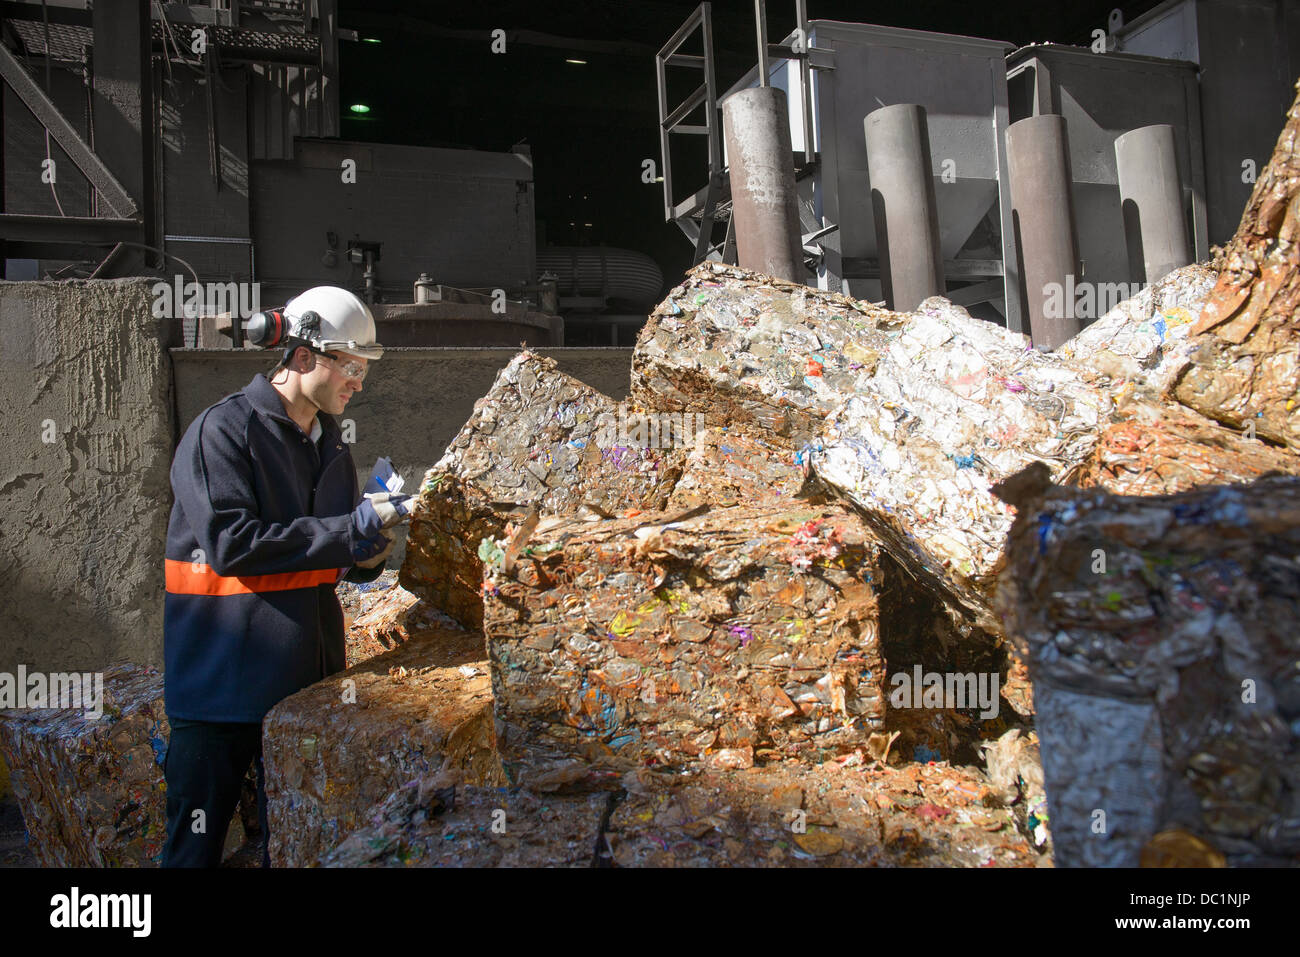 Steel worker examining scrap metal bales outside foundry - Stock Image